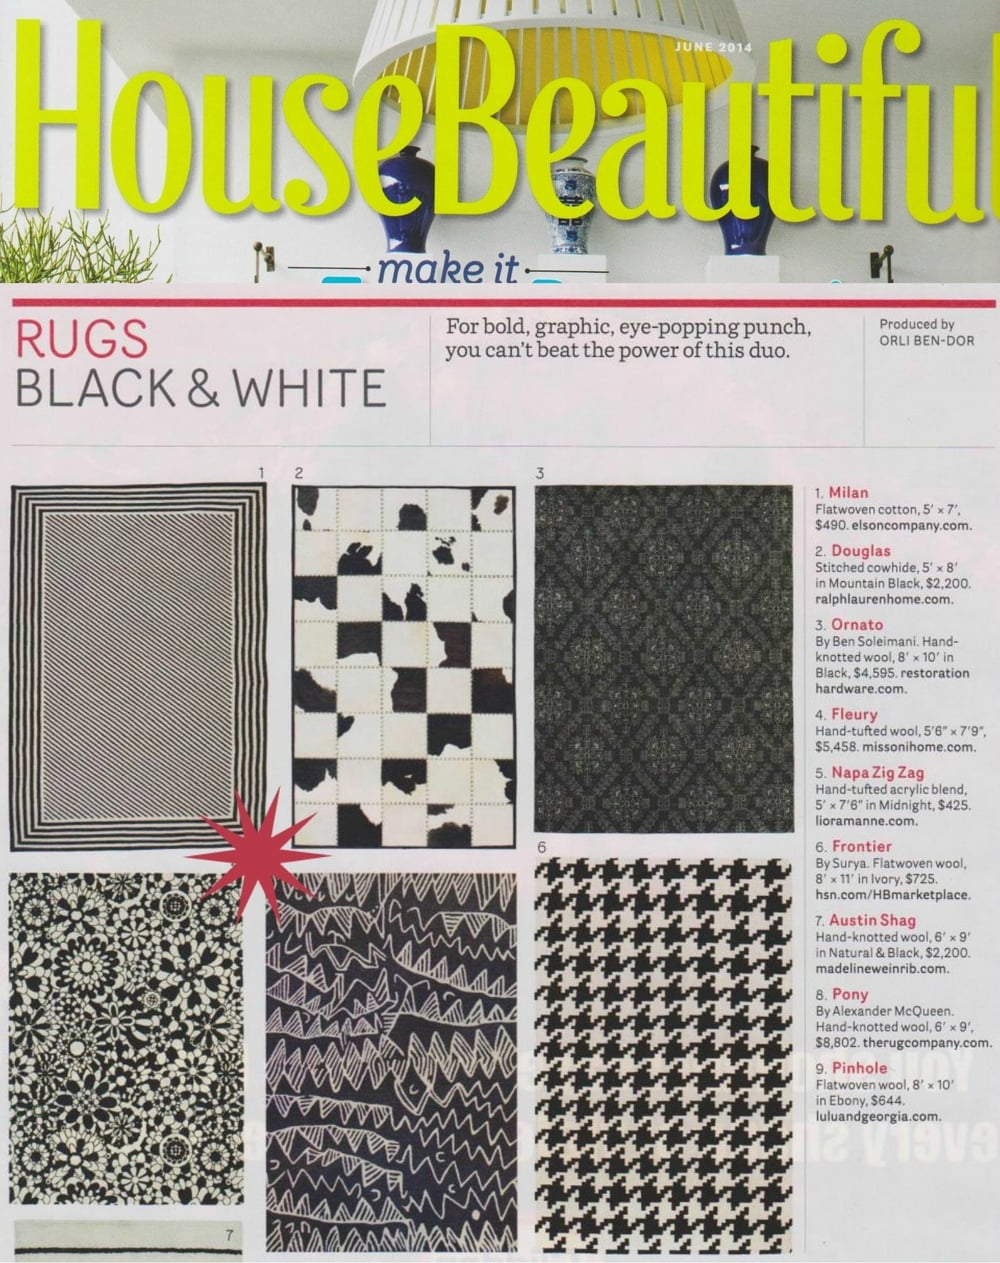 HB Black & White rugs.jpg